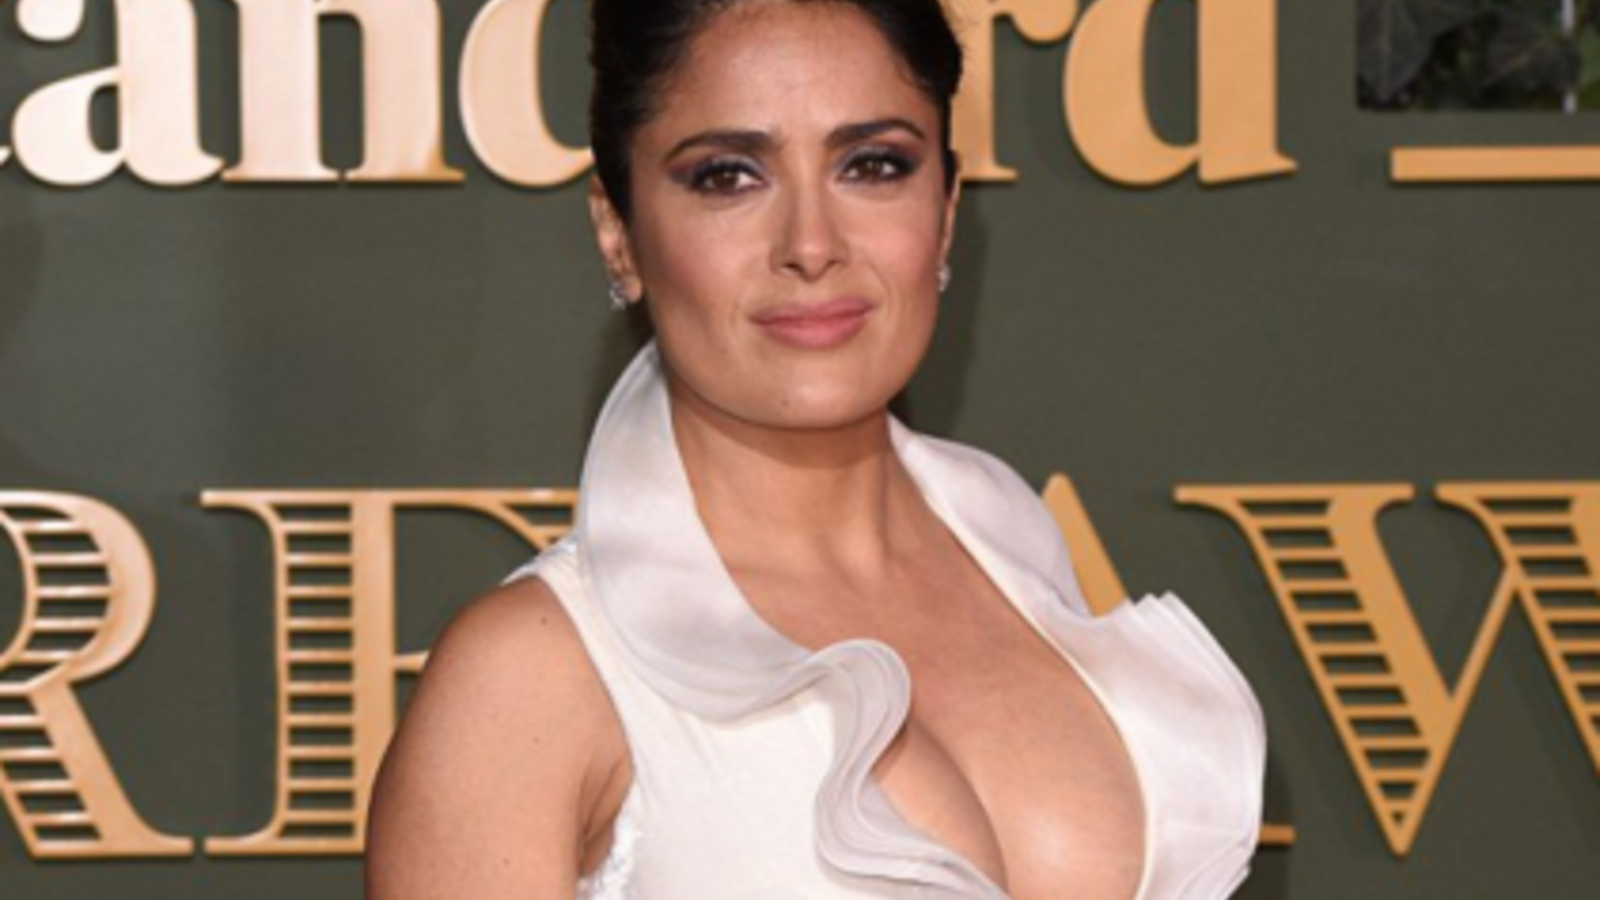 Salma's body can only be described as wowzers. (File photo)